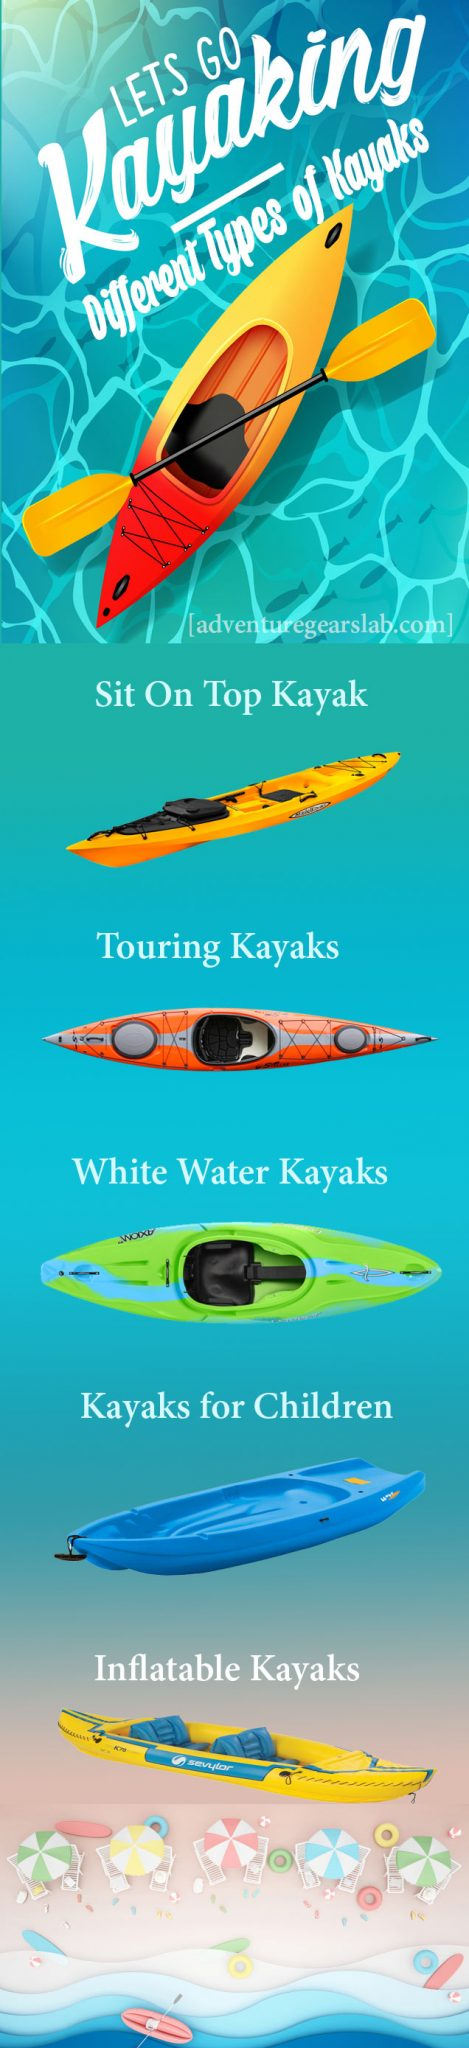 types-of-kayaks